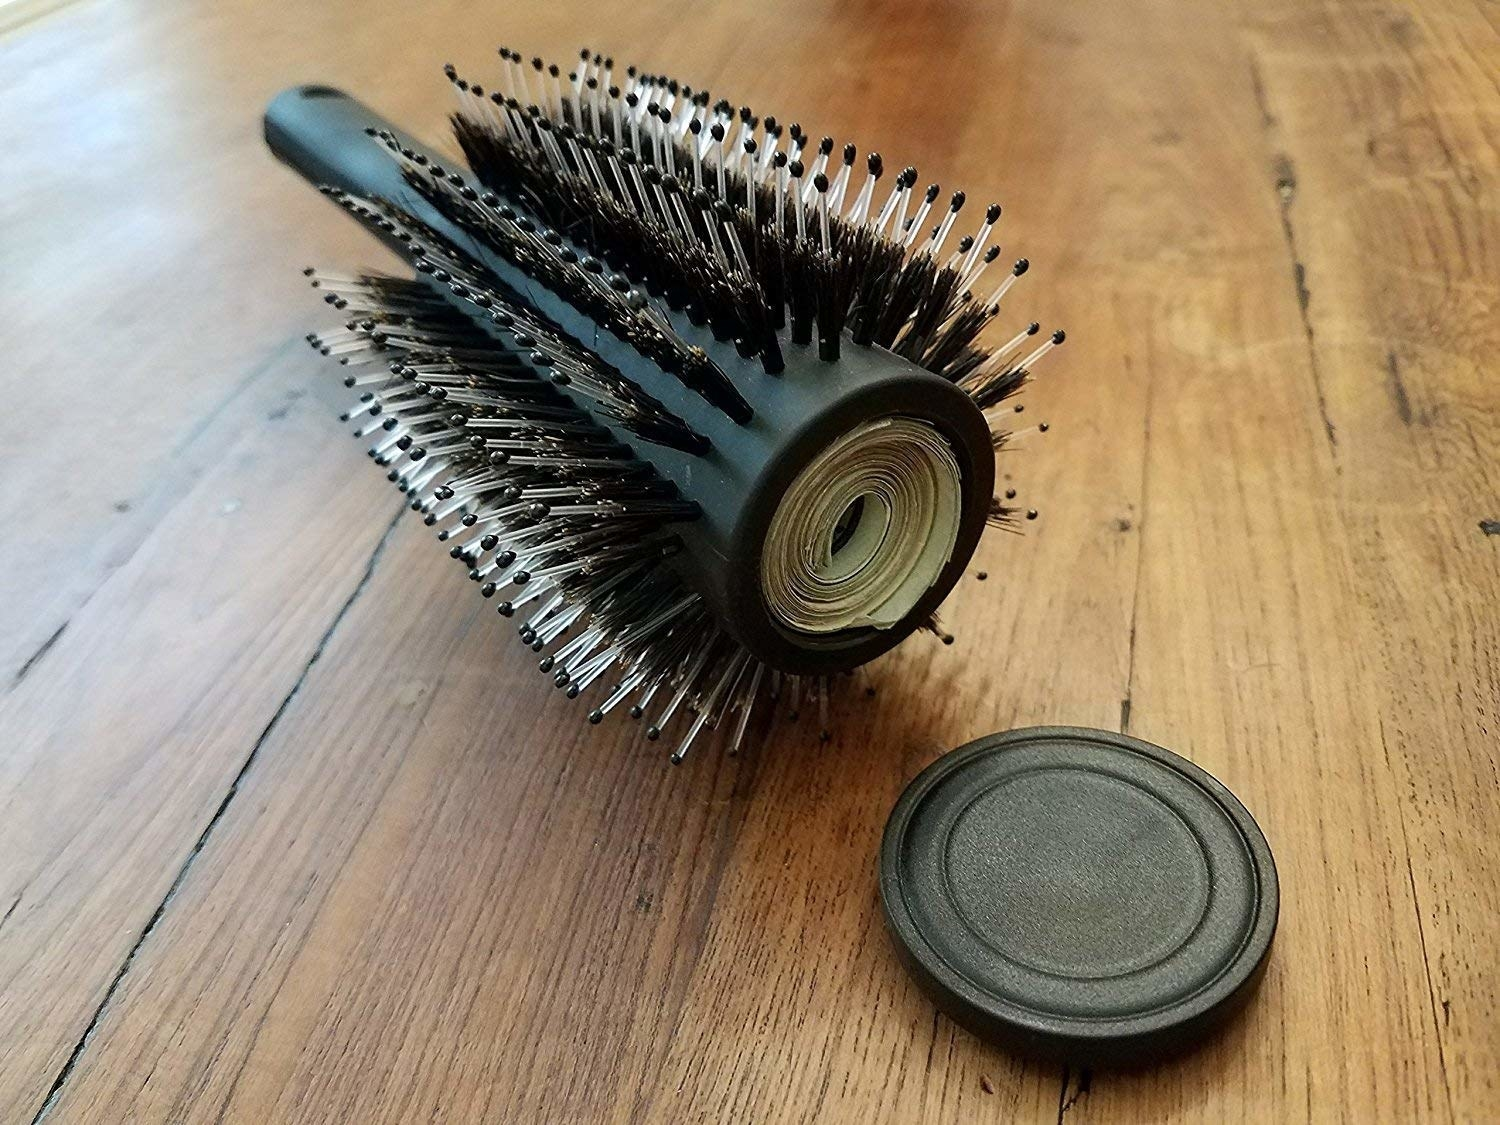 round hairbrush with part inside for stashing cash